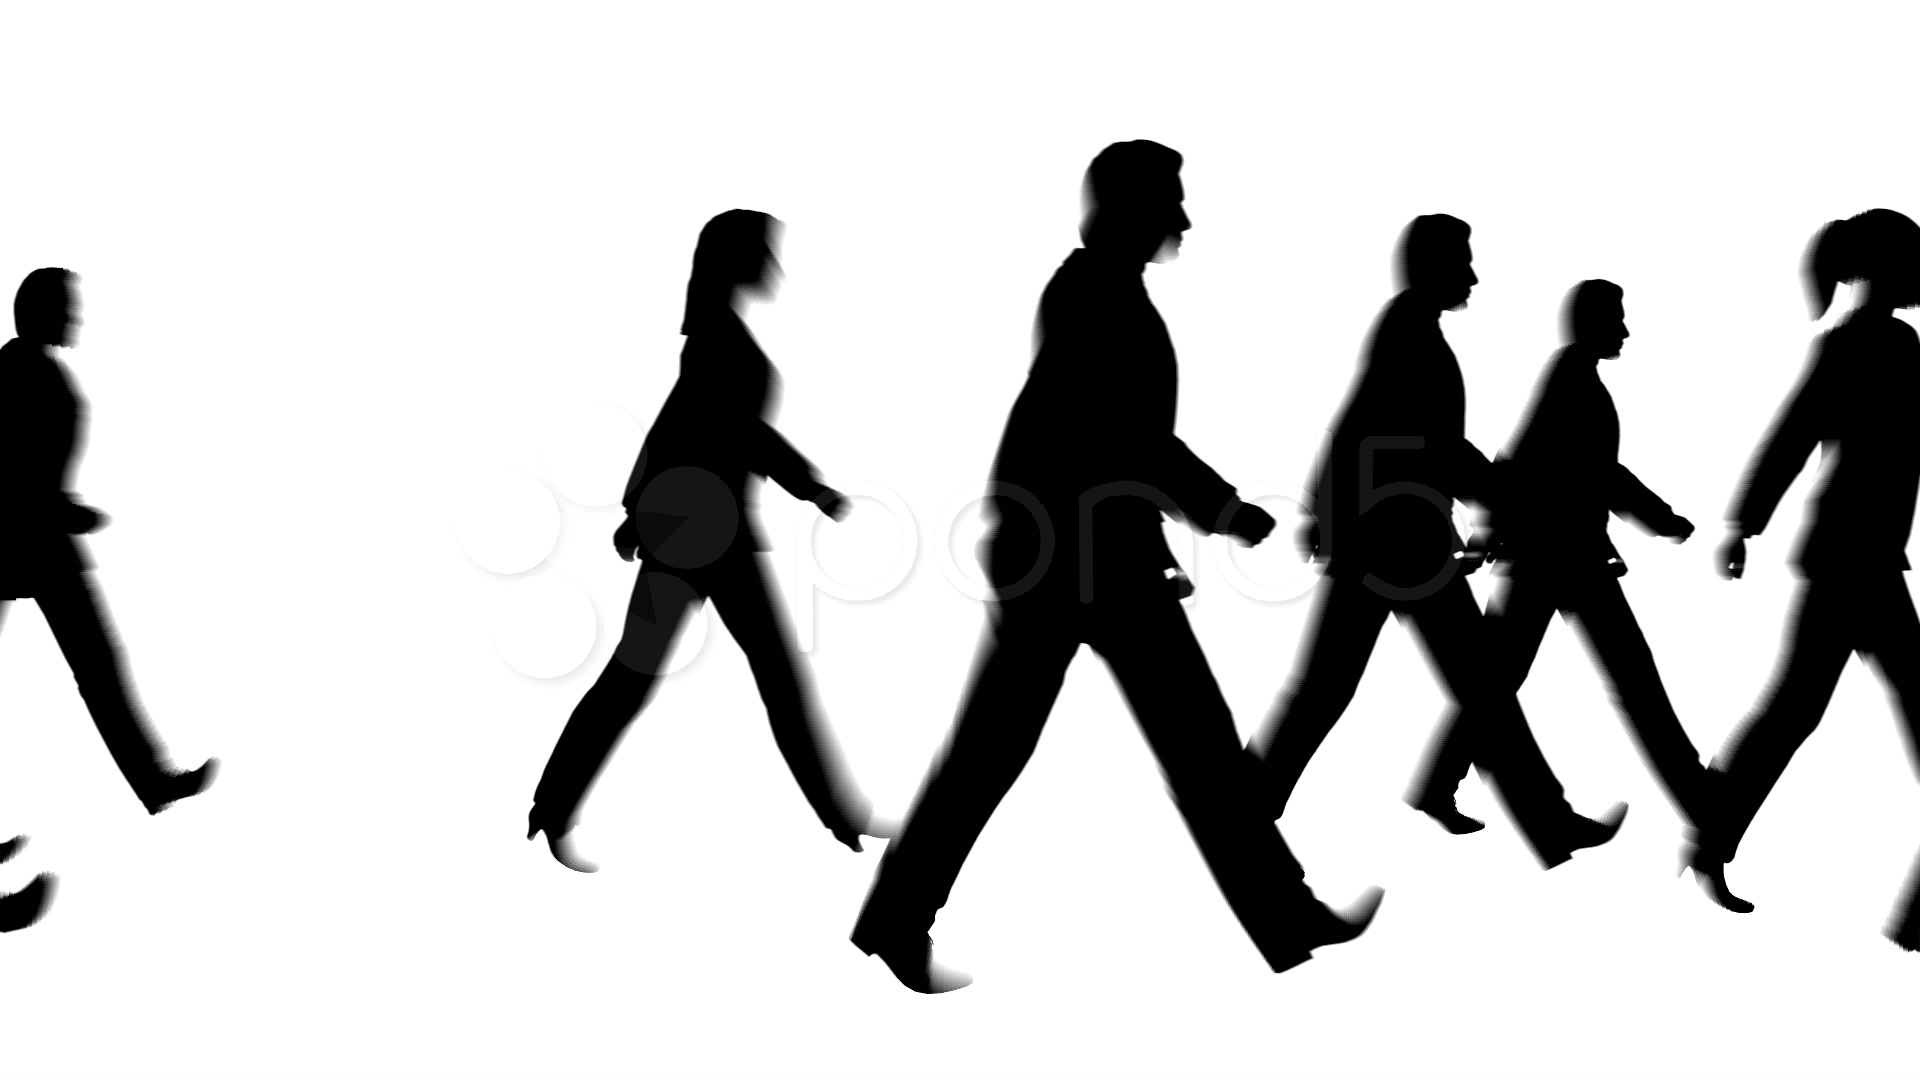 Crowd clipart walking People Free Clipart Silhouette Walking